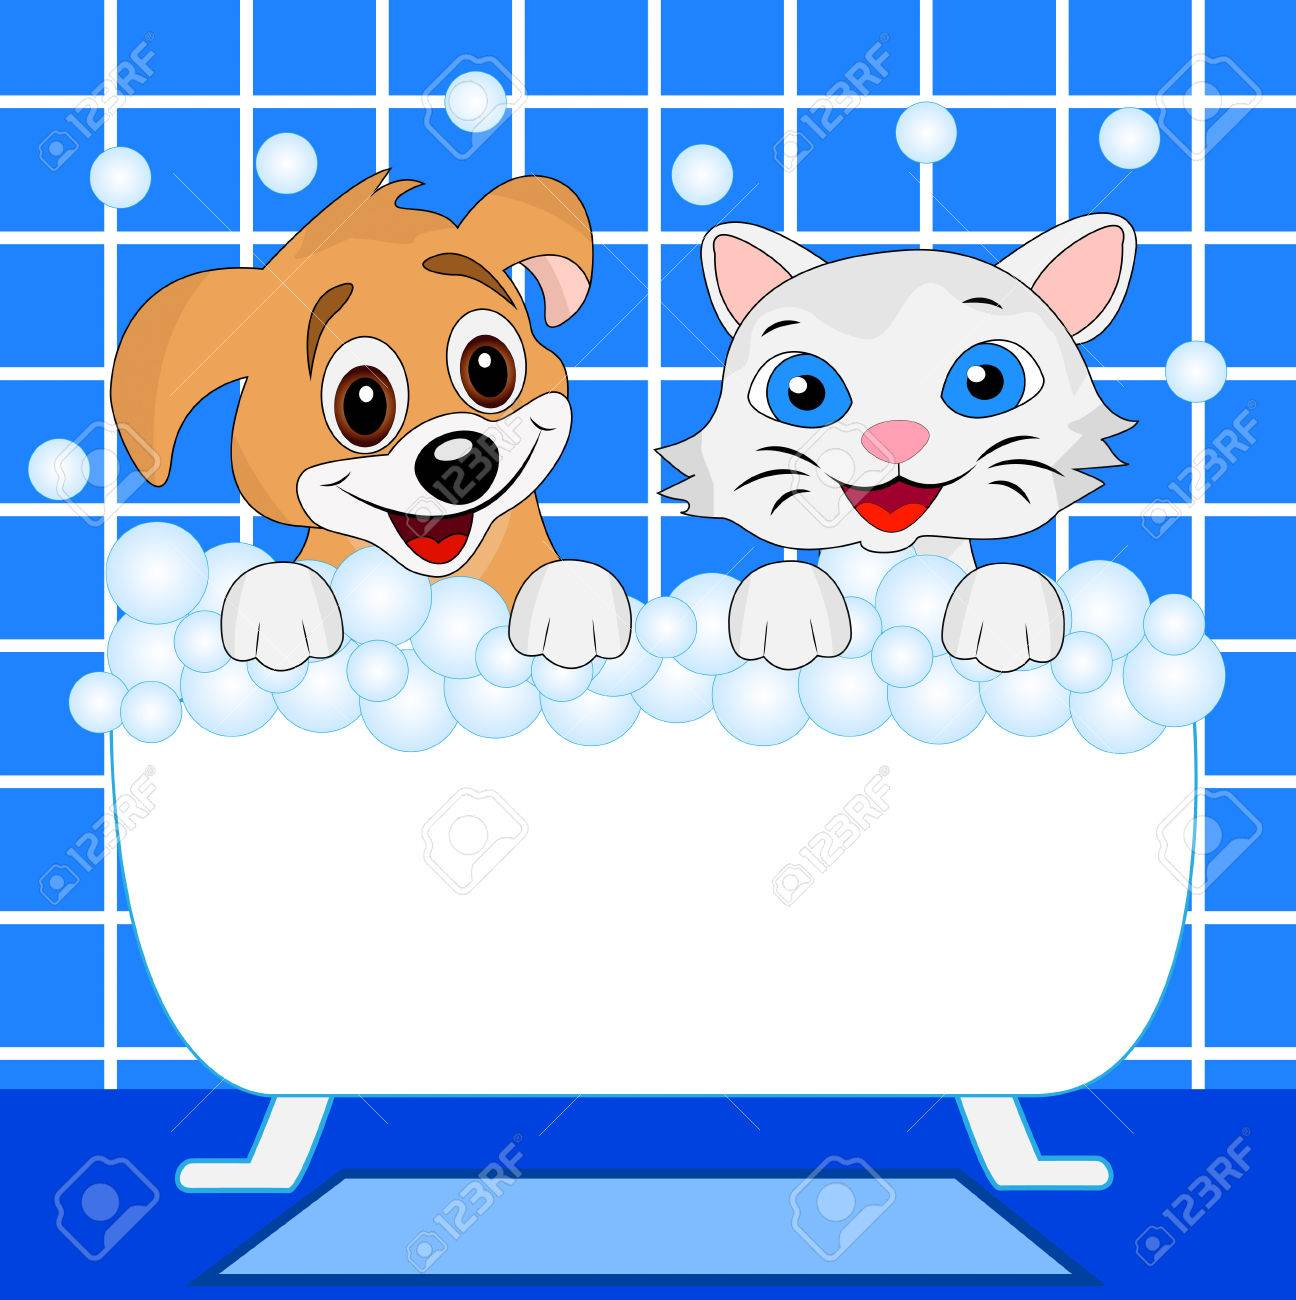 434 Cat Bath Stock Vector Illustration And Royalty Free Cat Bath ...